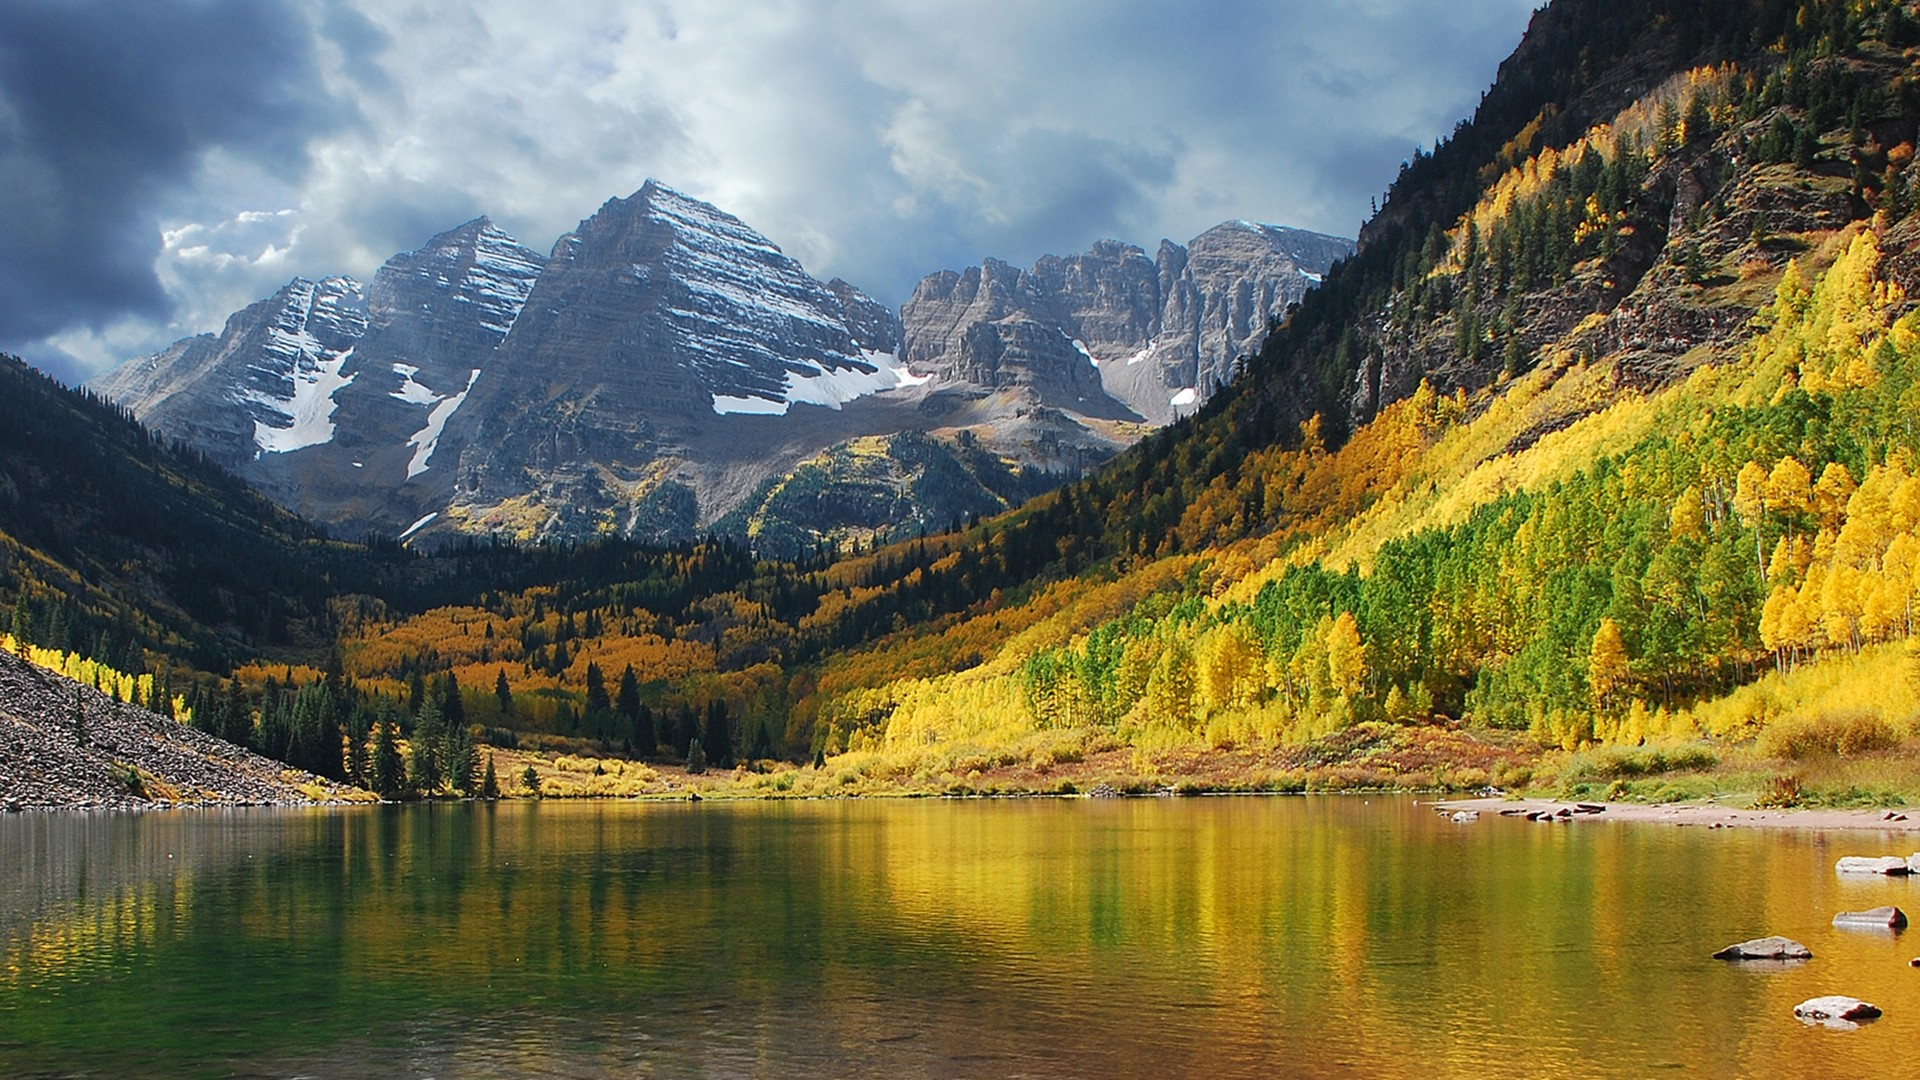 Hd Wallpapers Maroon Bell Mountain Colorado Lake Nature 1920 X 1080 1920x1080